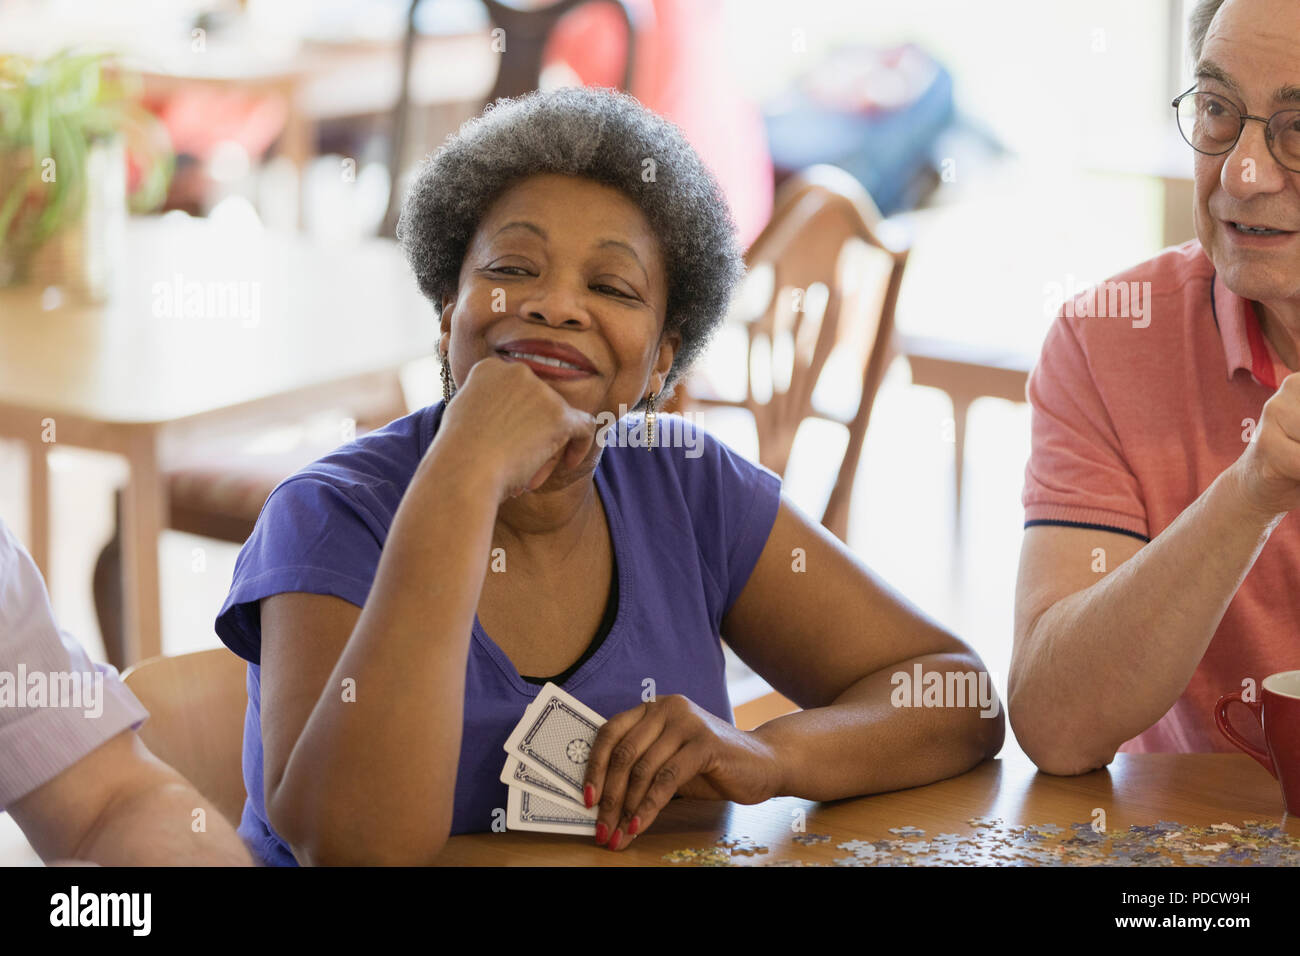 Confident, happy senior woman playing cards with friends in community center - Stock Image